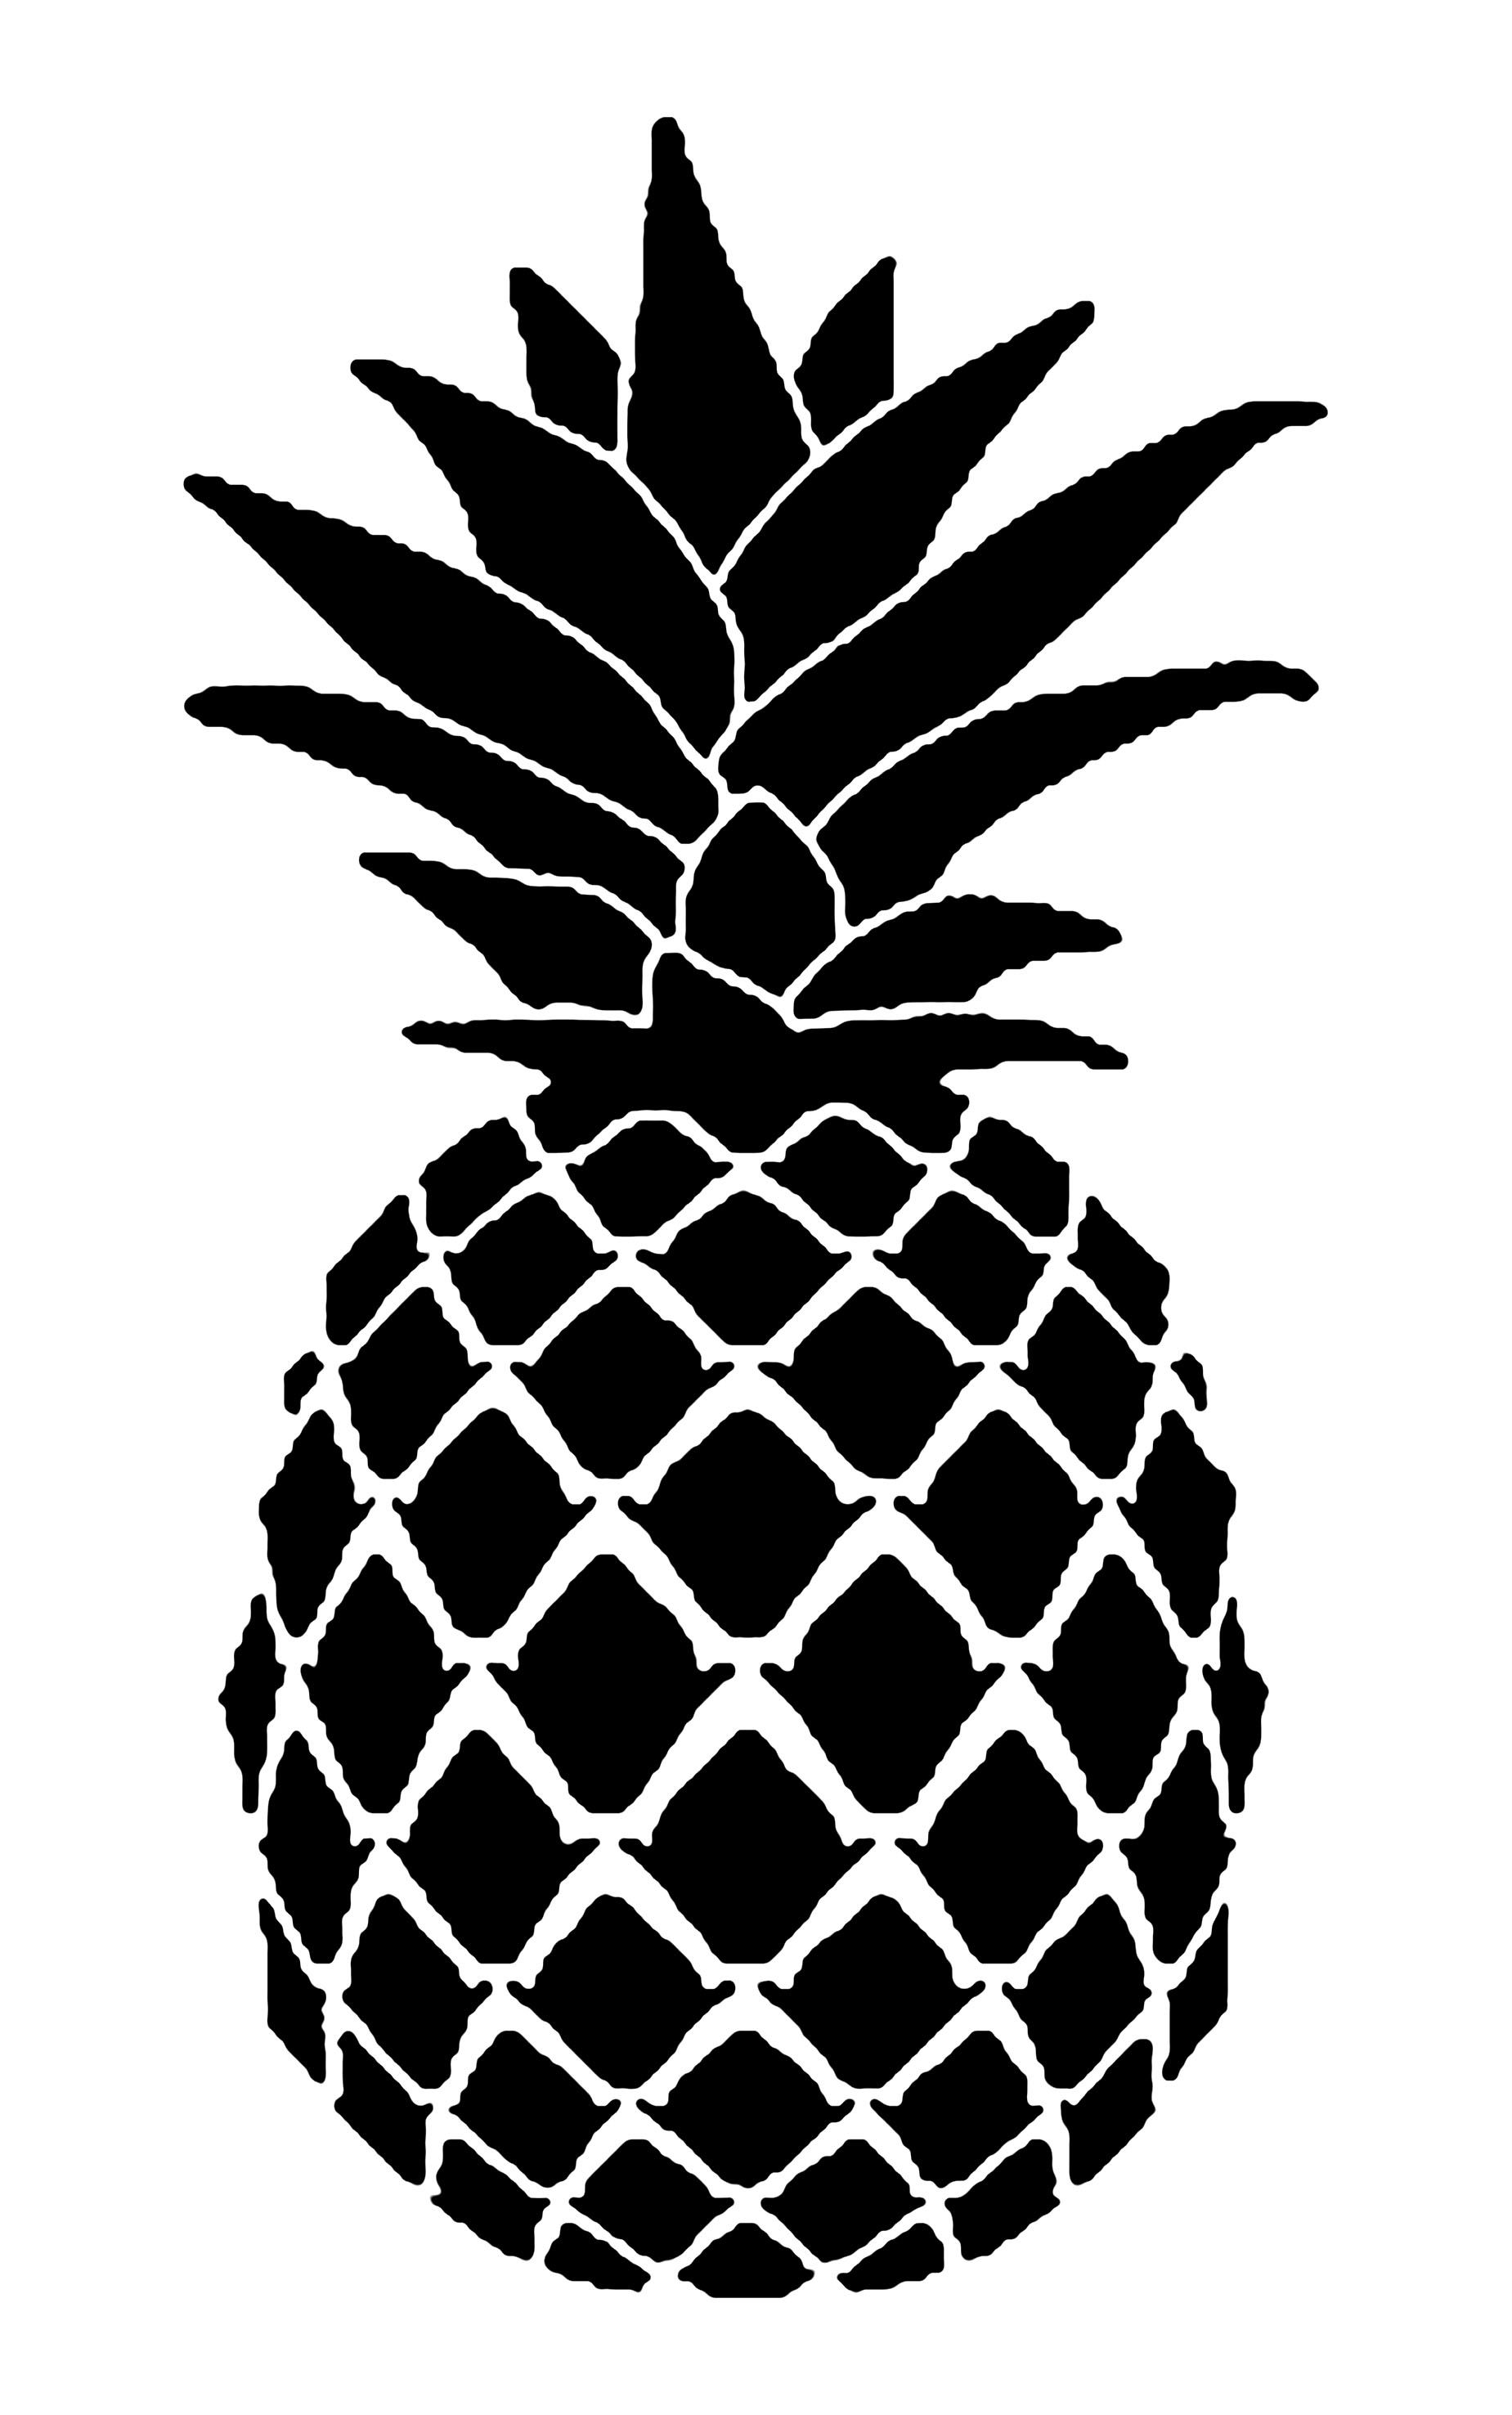 Pin by 方式 on 123 | Stencil template, Pineapple, Stencils